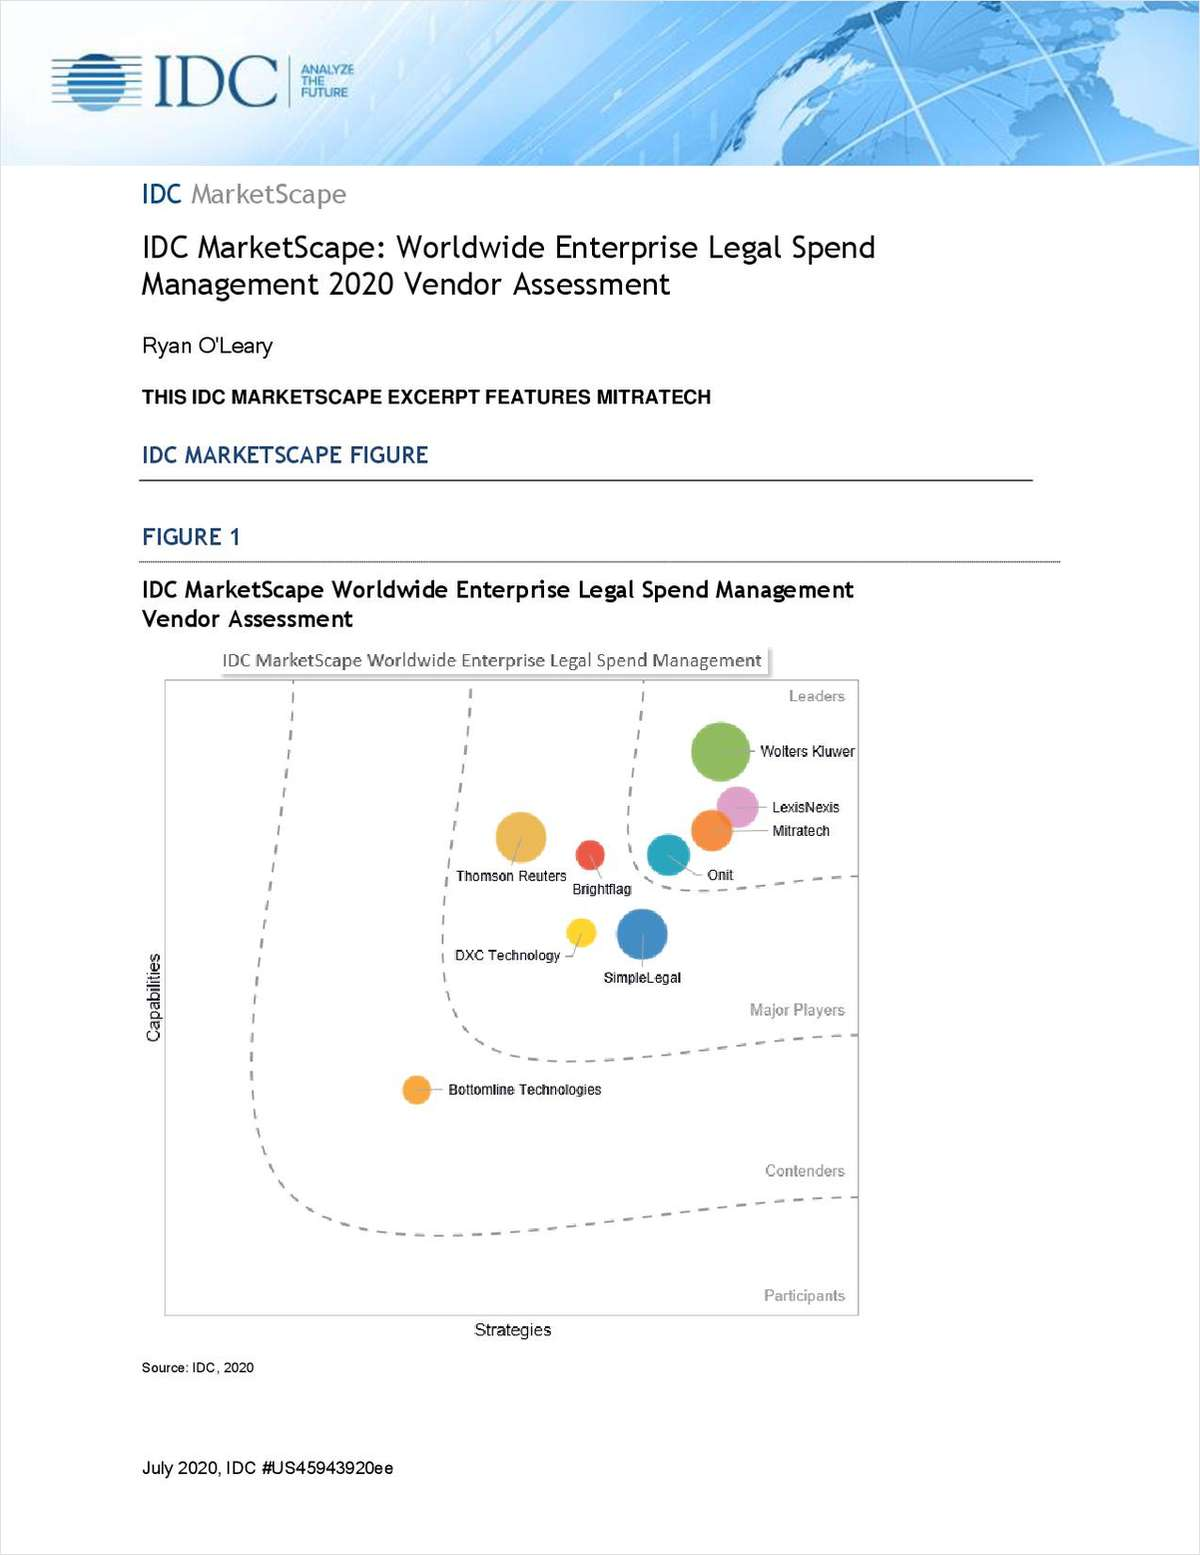 IDC MarketScape: Worldwide Legal Spend Management 2020 Vendor Assessment